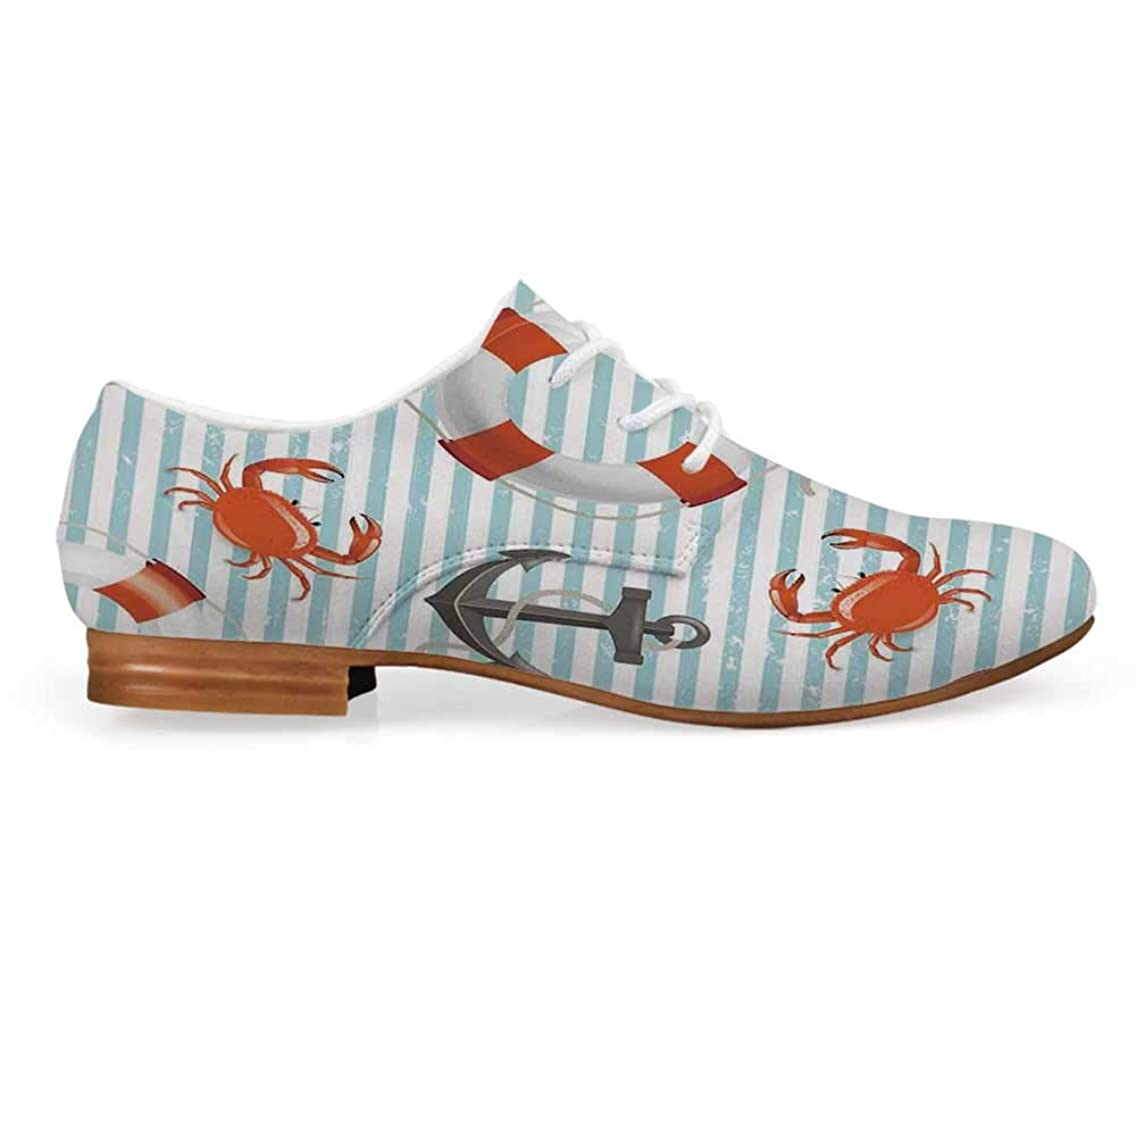 Nautical Leather Lace up Oxfords Shoes,Life Rings Anchor and Ropes Ocean Crabs Coastal Theme Teal Striped Print Bootie for Girls ladis Womens